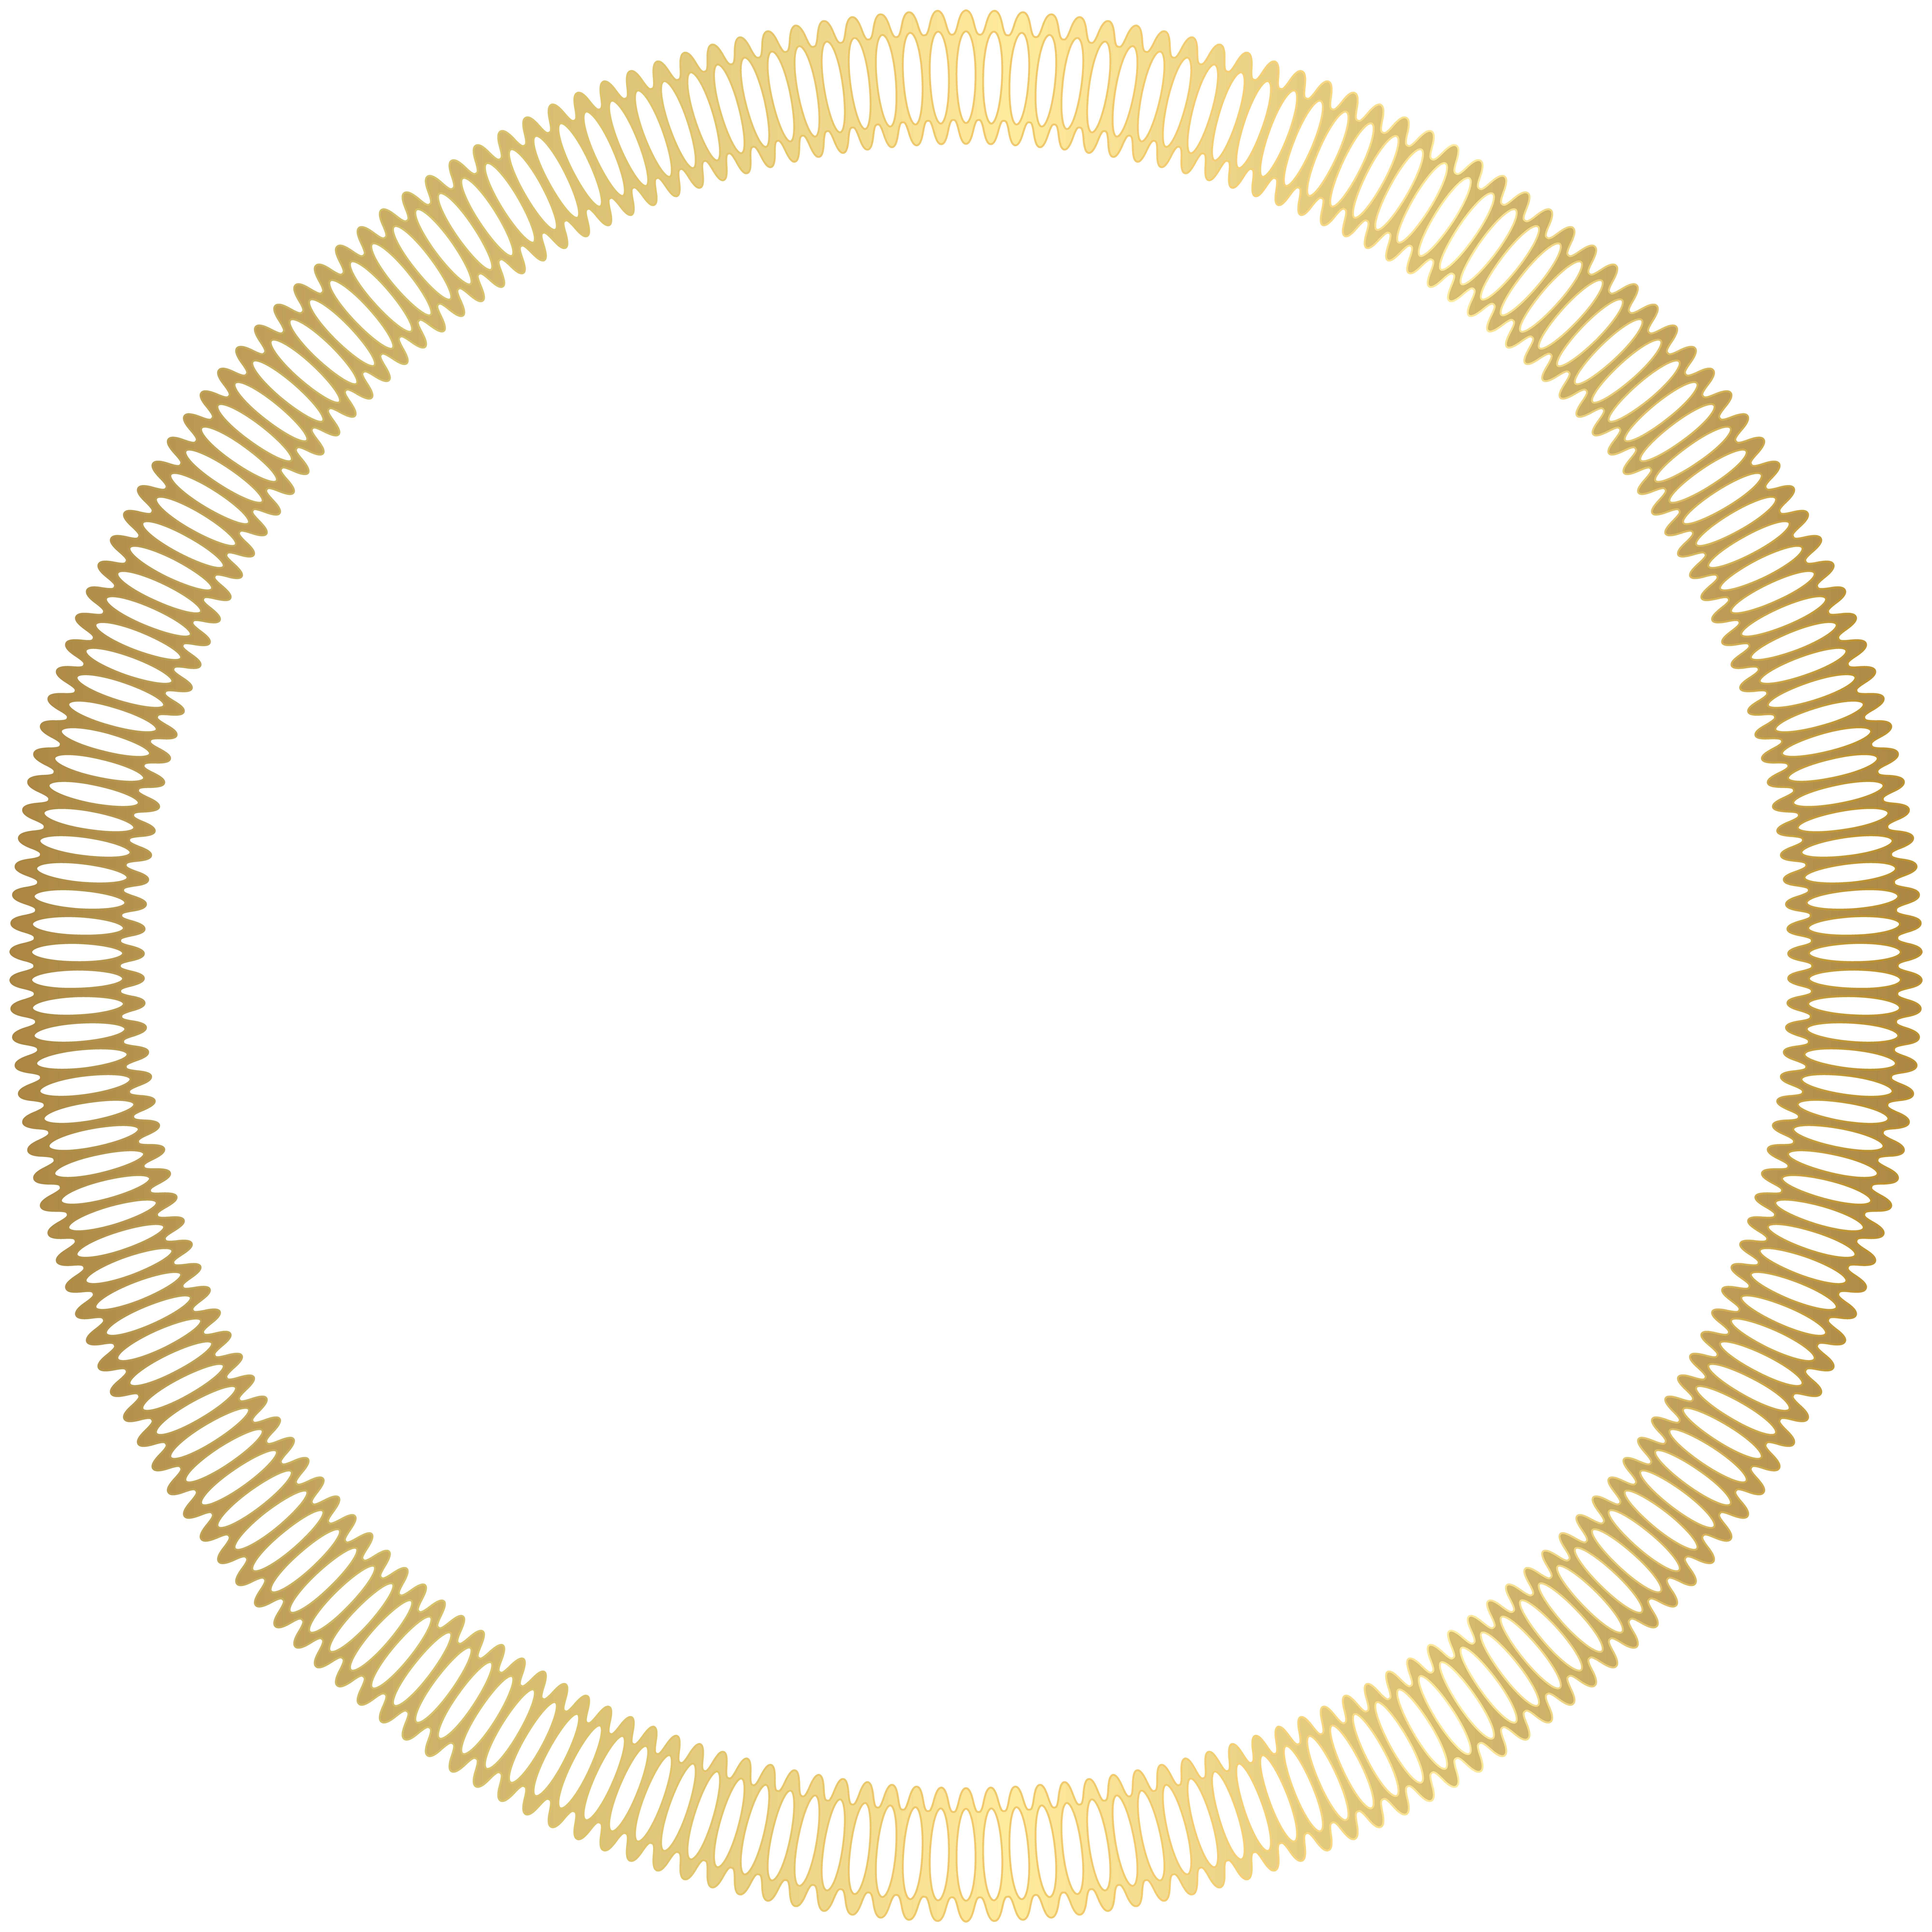 svg library stock Circle chain clipart. Gold round deco border.